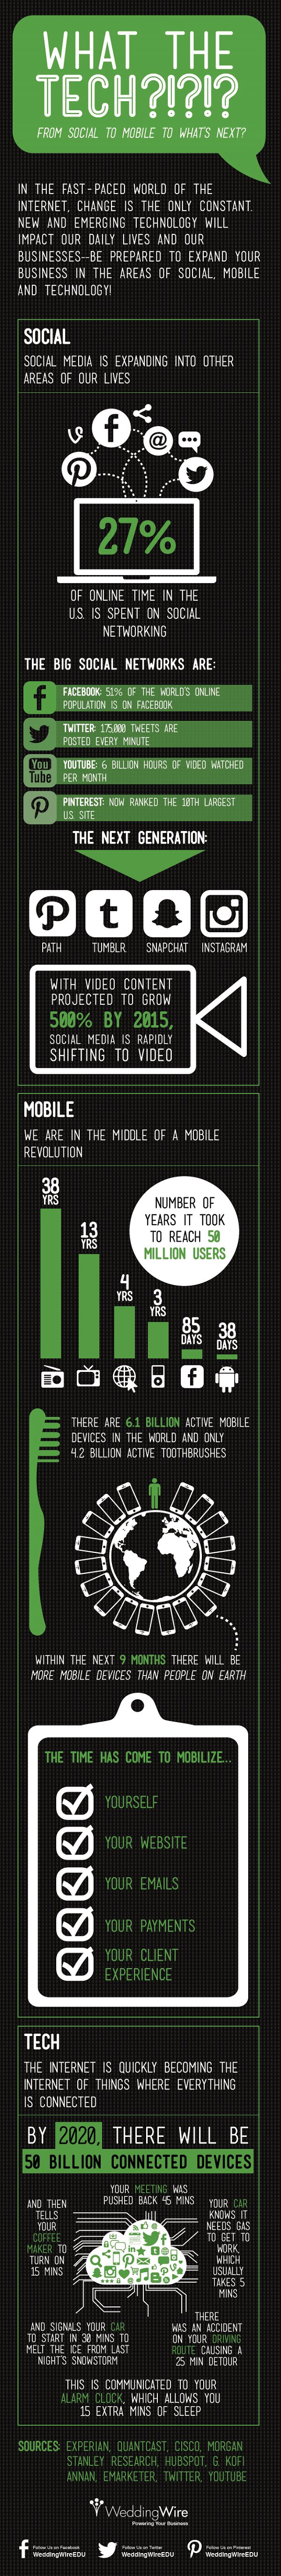 What the Tech?! Social Media, #Mobile & #Tech Trends and Stats - #infographic  #SocialMedia #TechTrends #technology: Digital Marketing, Infographic Socialmedia, Computers Technology, Digital Life, Technology Trends, Techtrend Technology, Mobiles Tech, Mobiles Social, Socialmedia Techtrend